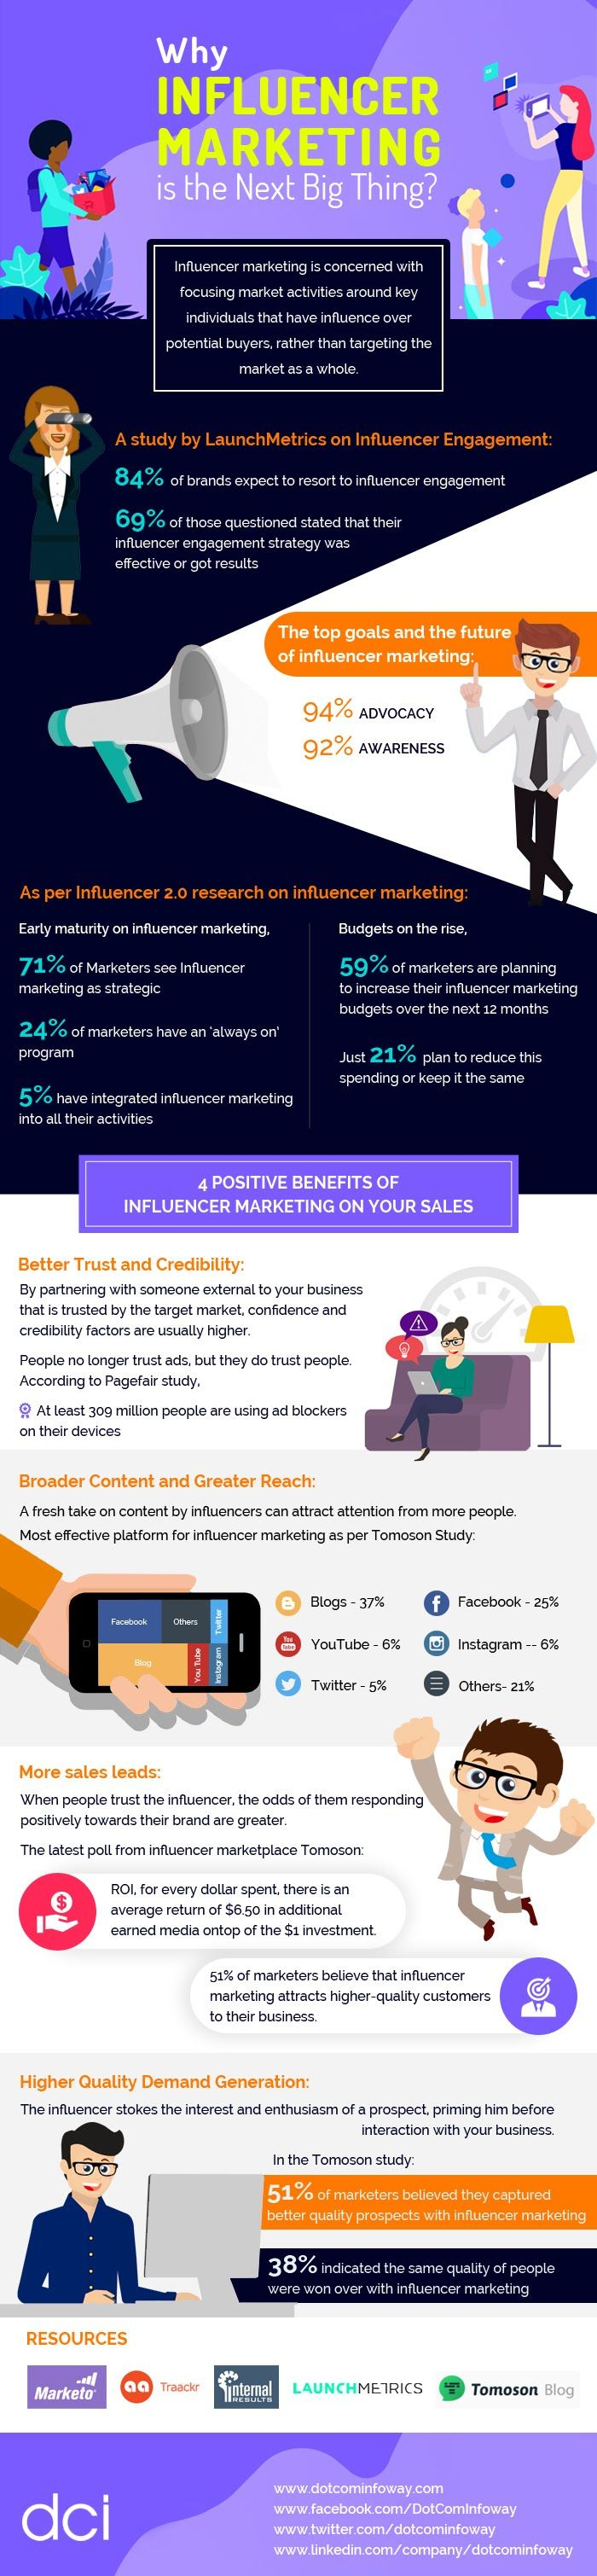 Why Influencer Marketing is the Next Big Thing? - #infographic